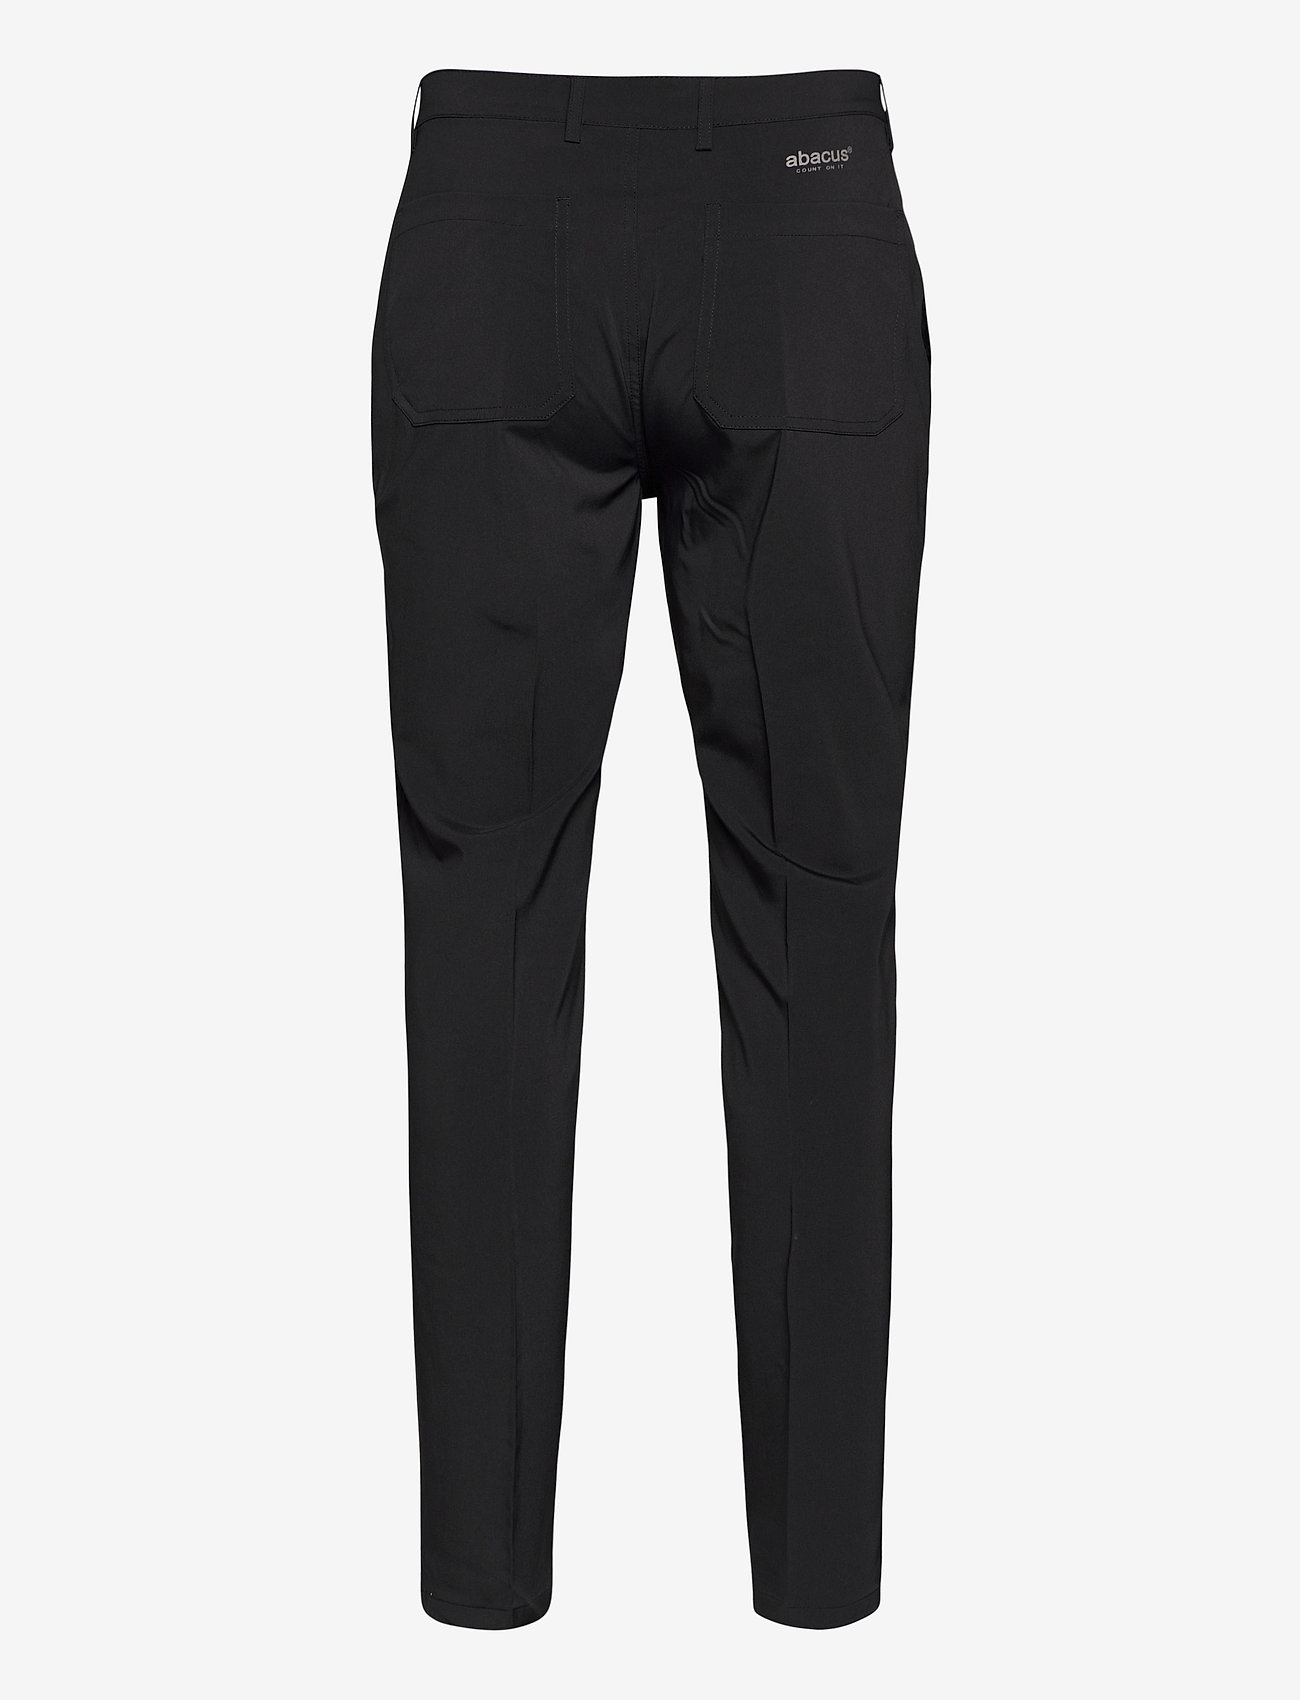 Abacus - Mens Cleek stretch trousers - golf-housut - black - 1